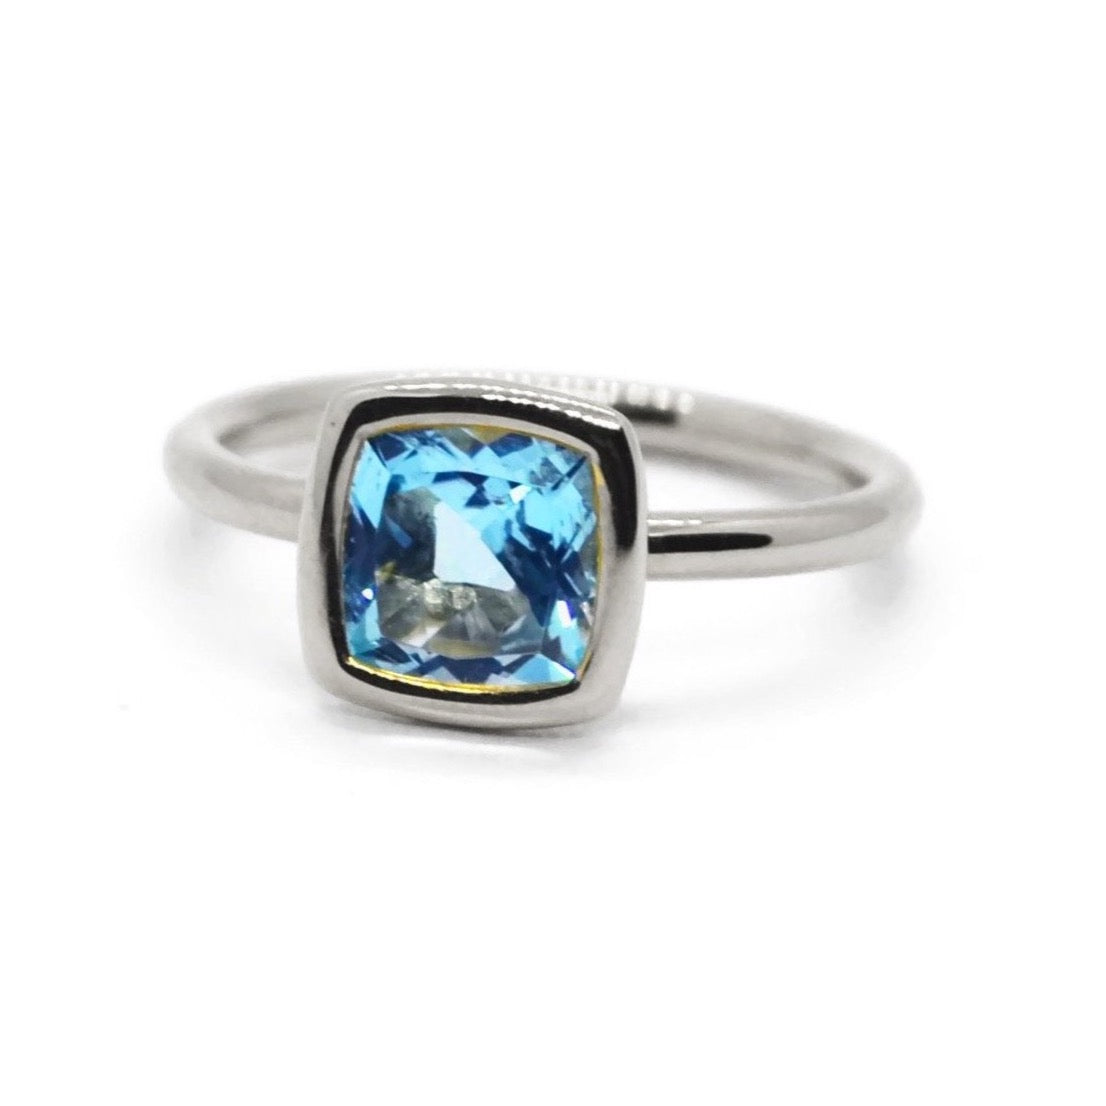 A & Furst - Gaia - Small Stackable Ring with Swiss Blue Topaz, 18k White Gold